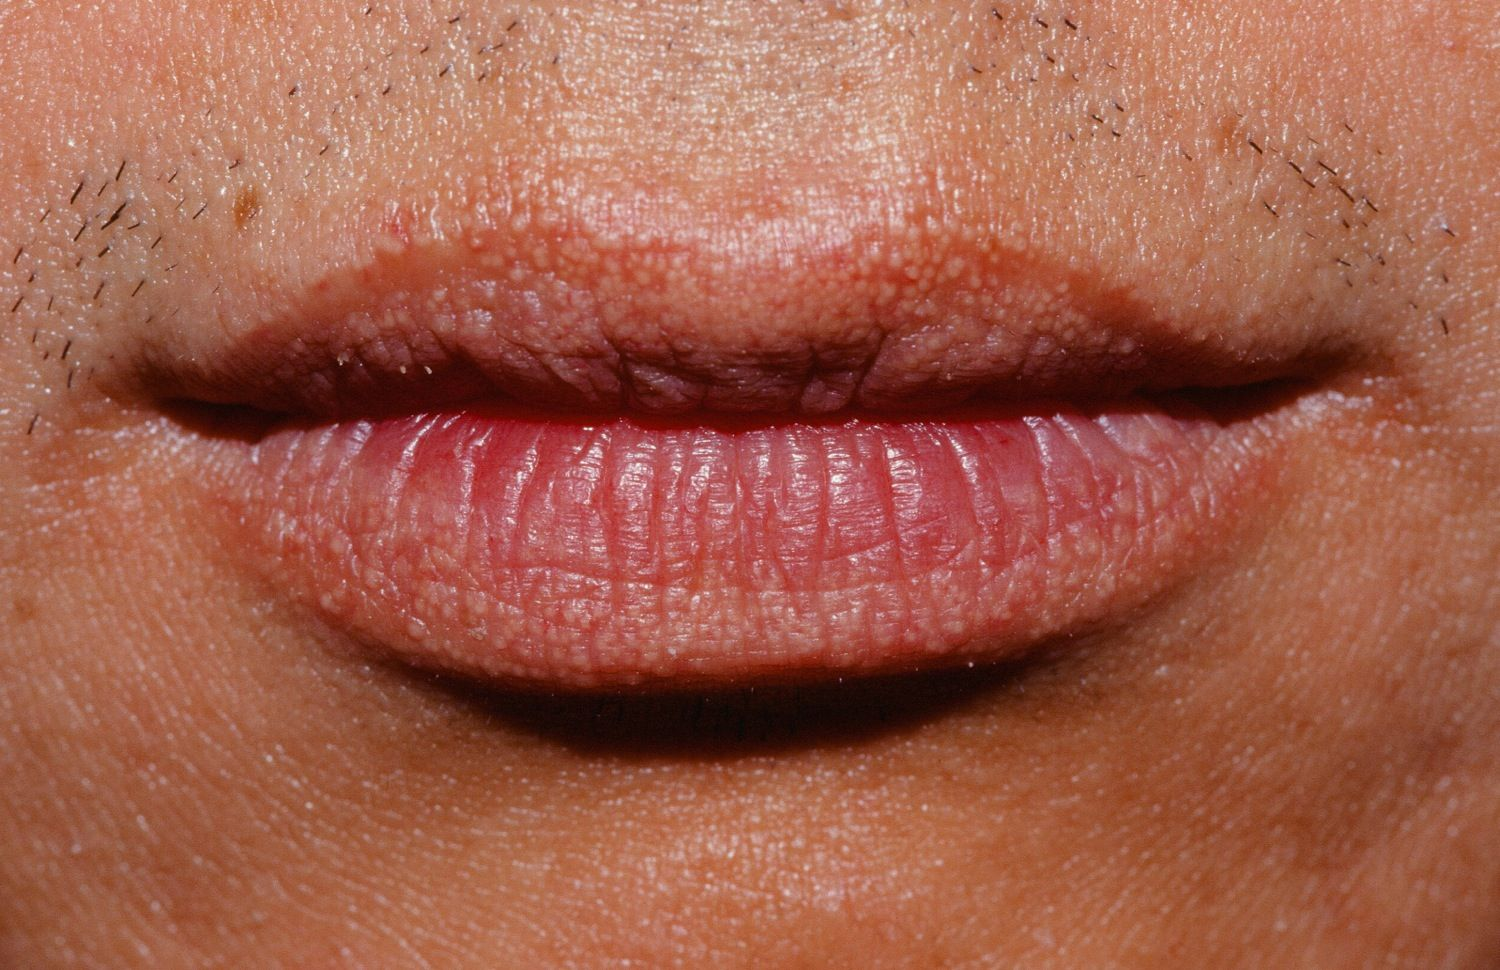 How To Get Rid Of Fordyce Spots On Lips Jpg 1500 970 Small